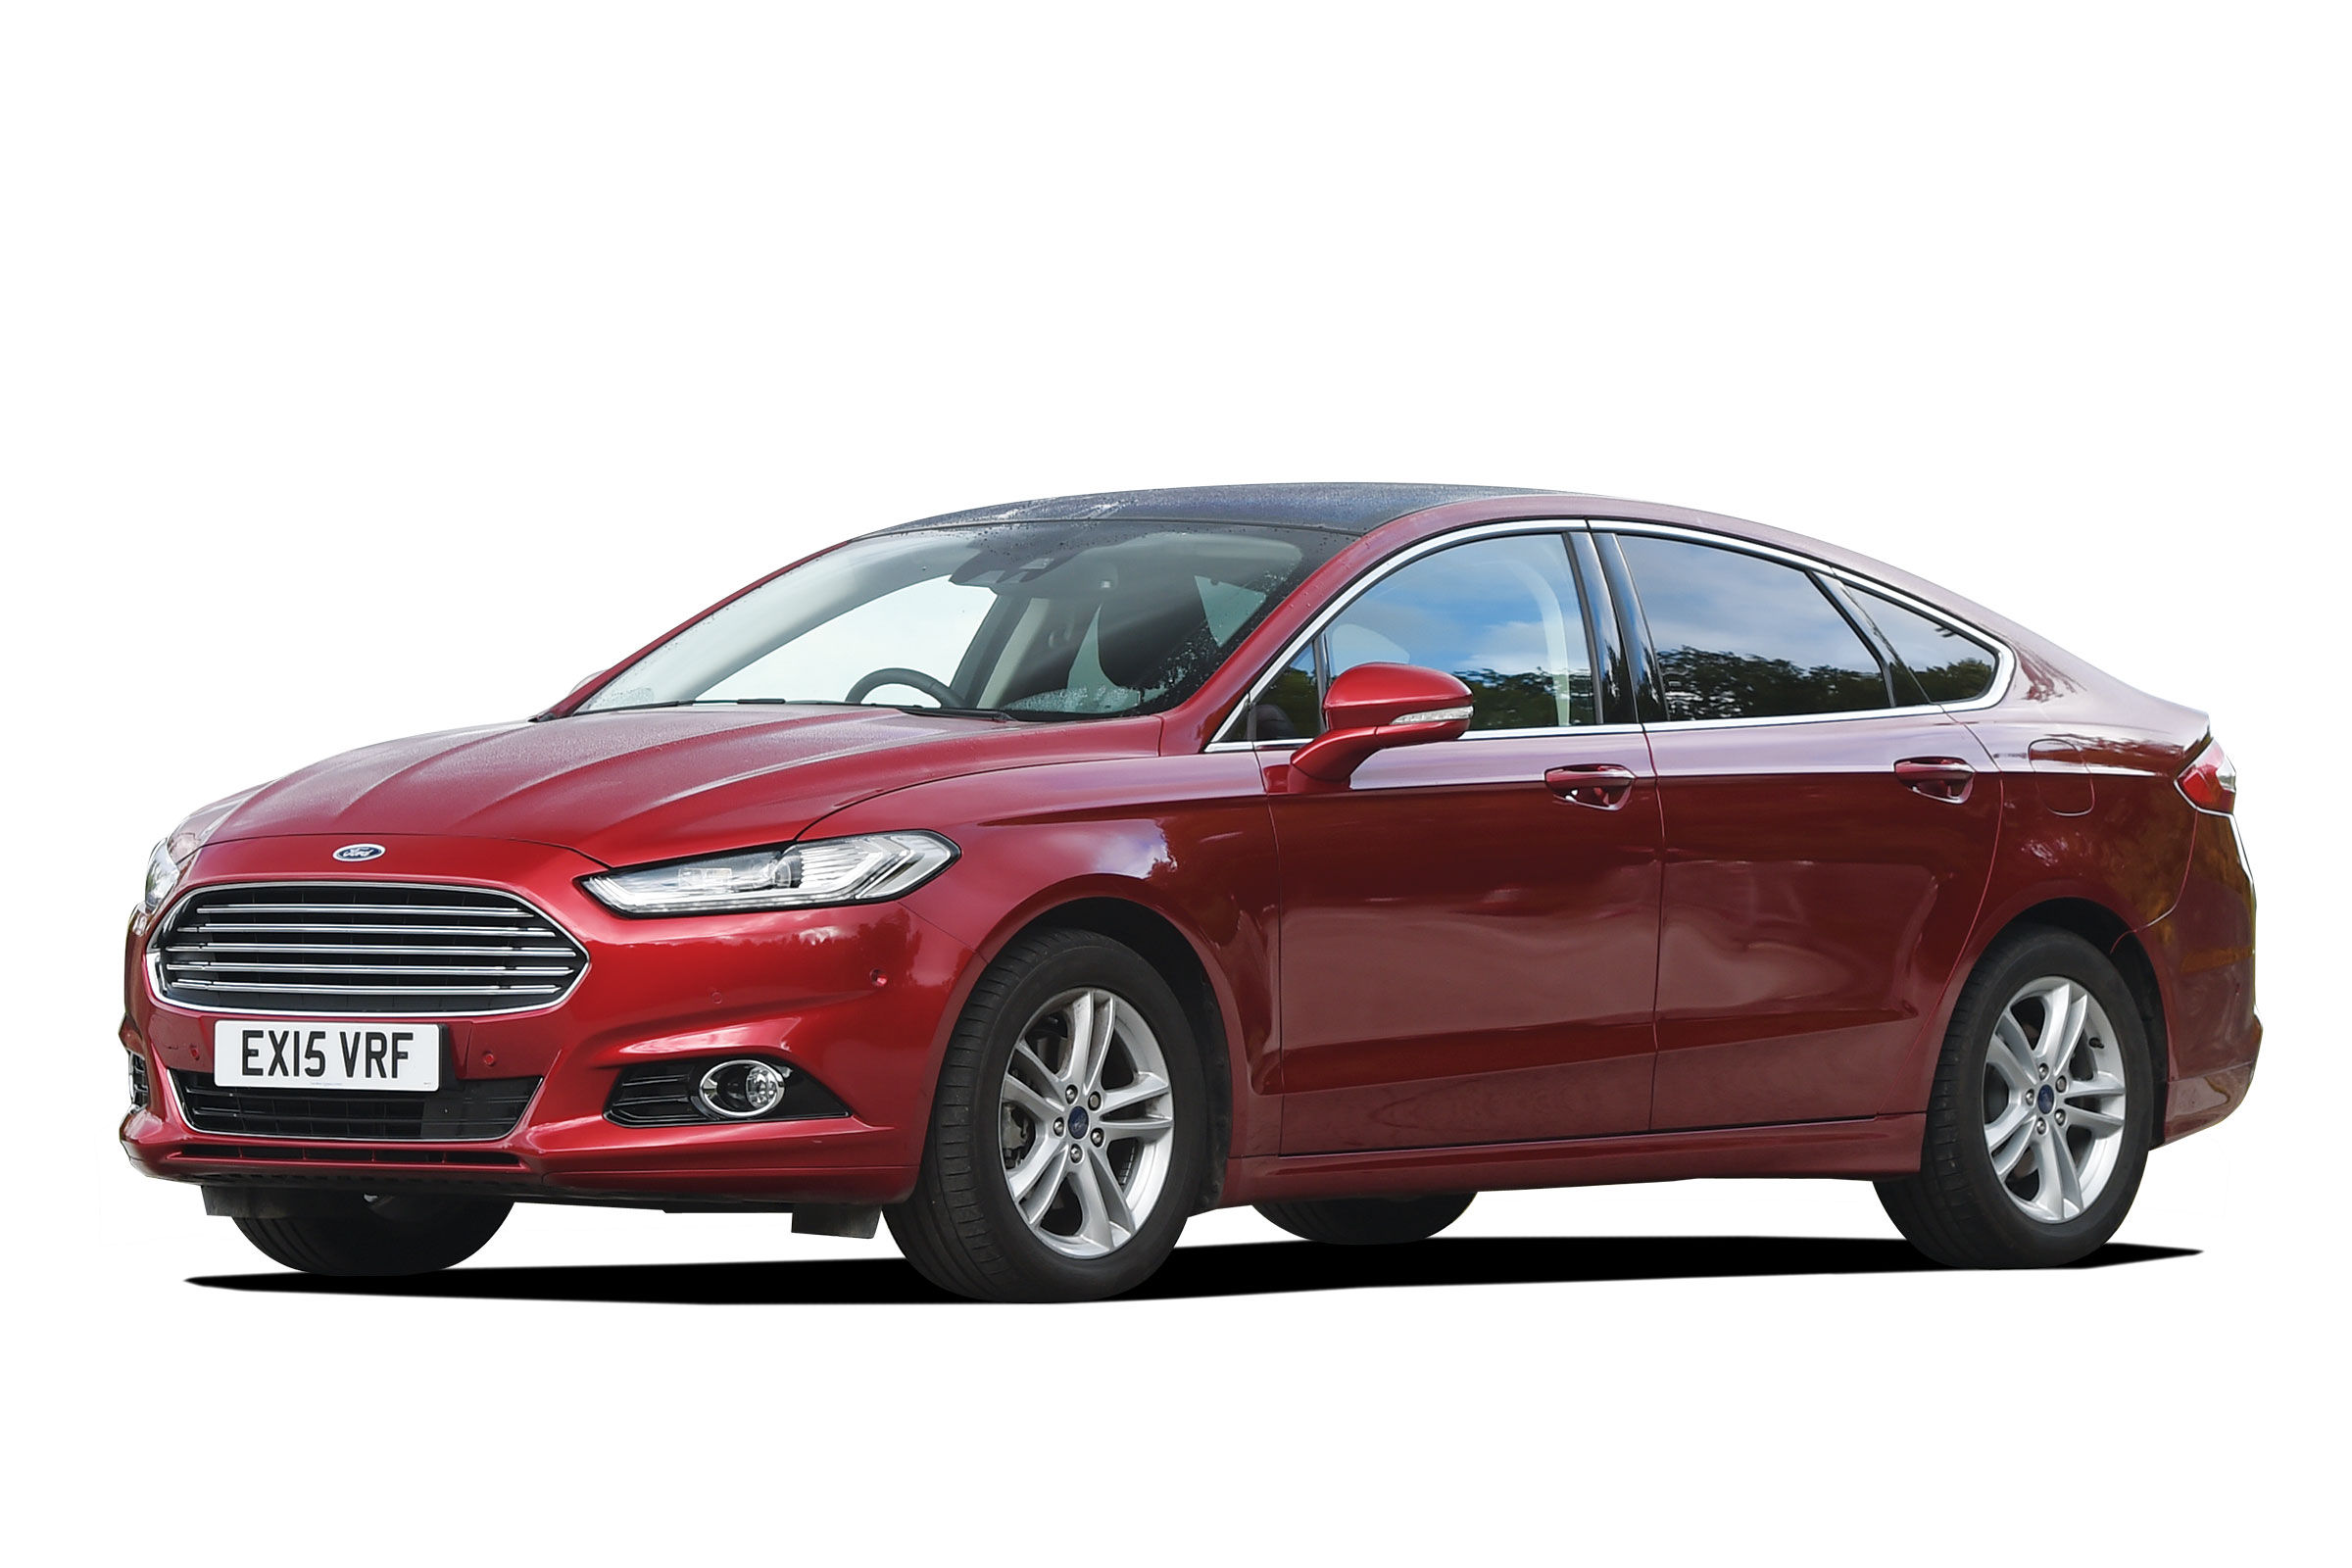 image of Large Hatchback (Mondeo or similar)